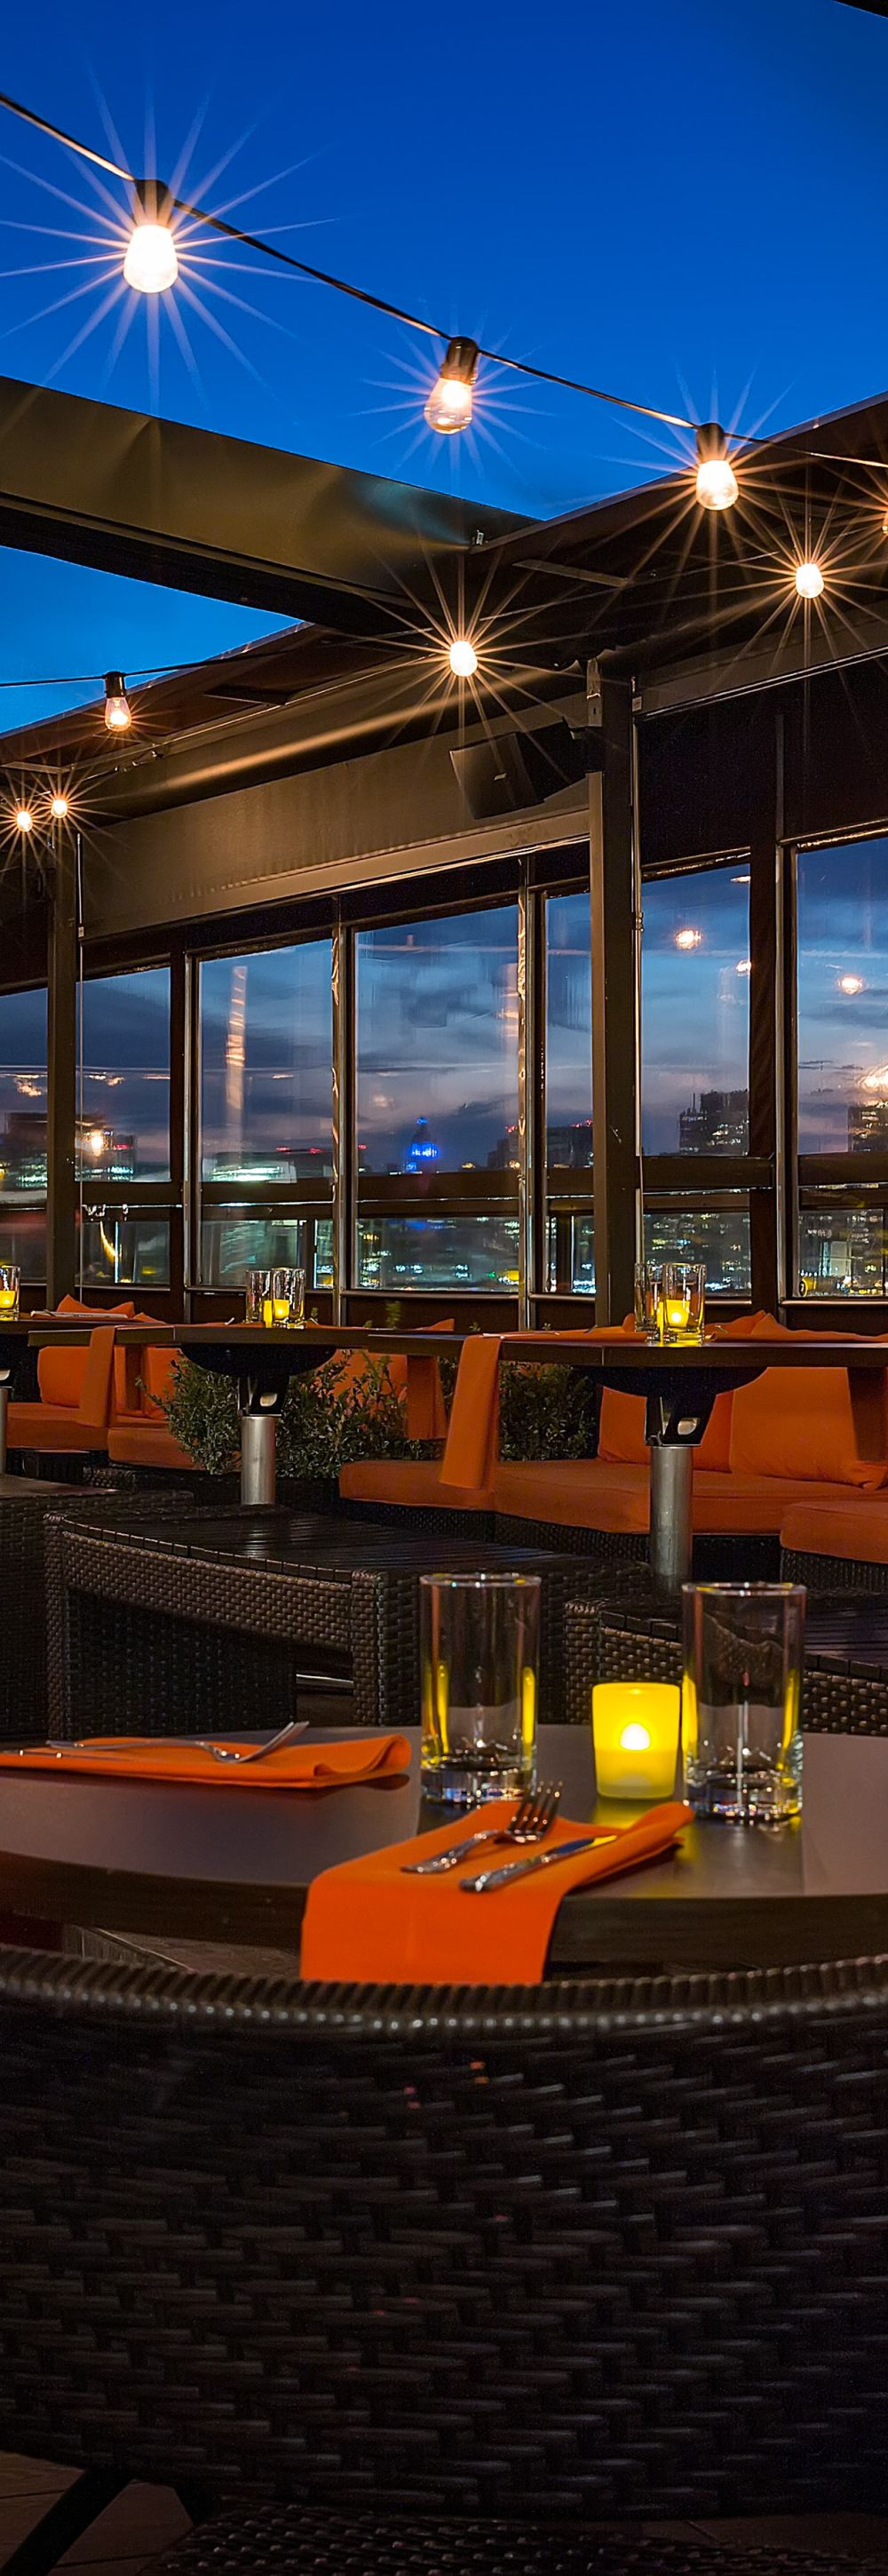 Interior view of Penthouse 808 rooftop restaurant and bar lounge in Long Island City, NYC